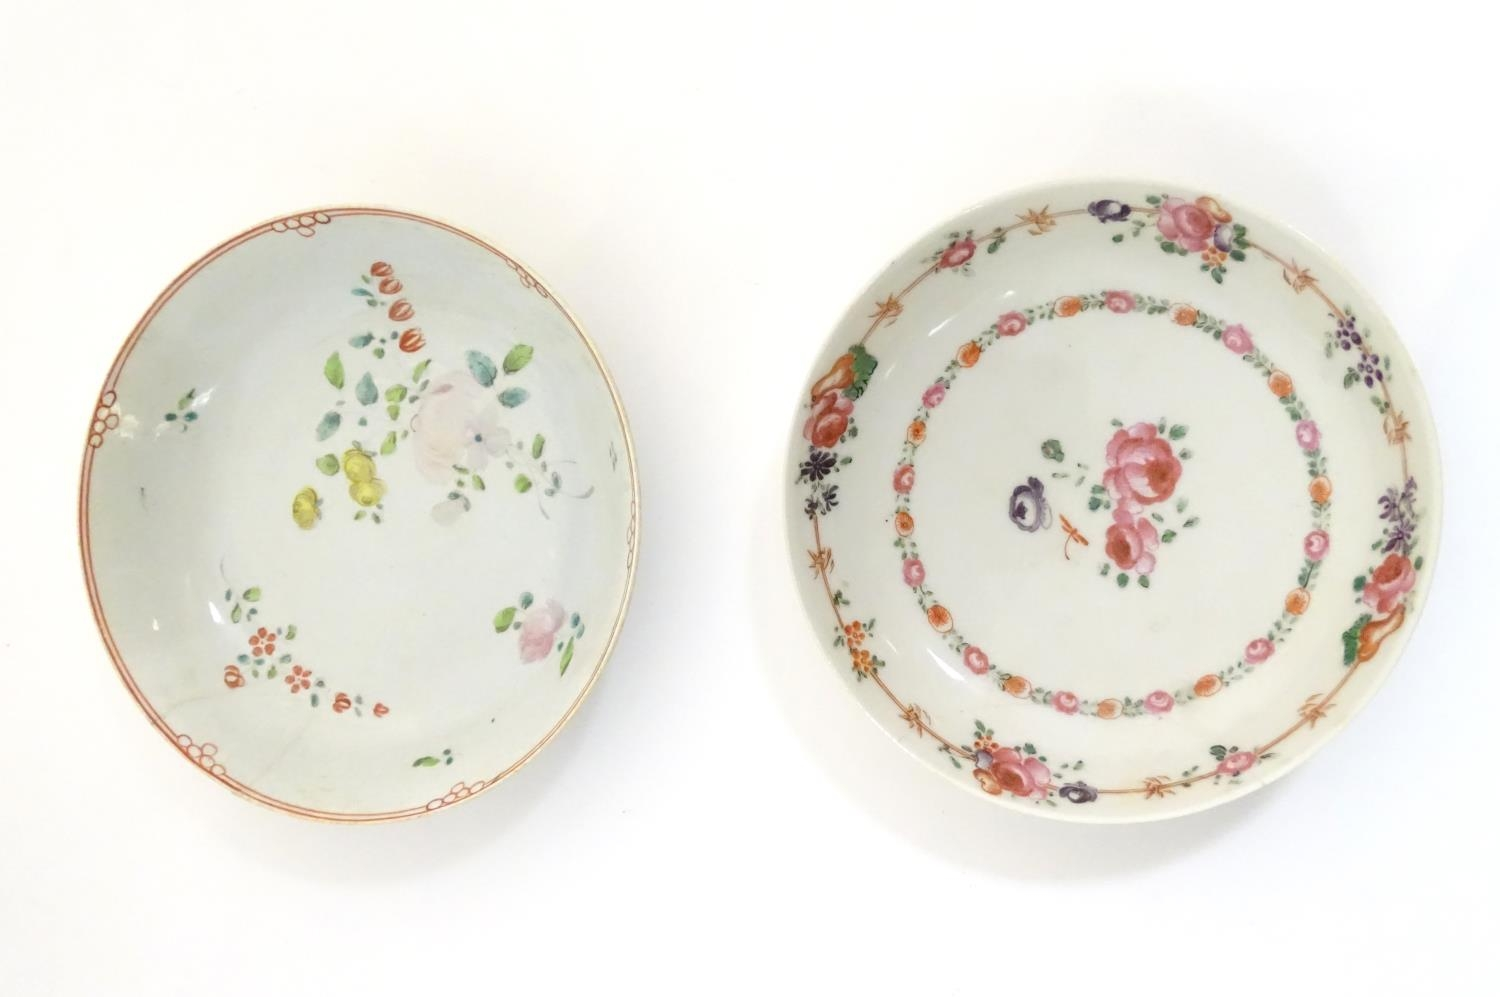 A New Hall style saucer with hand painted floral and foliate detail. Together with another. - Image 6 of 18